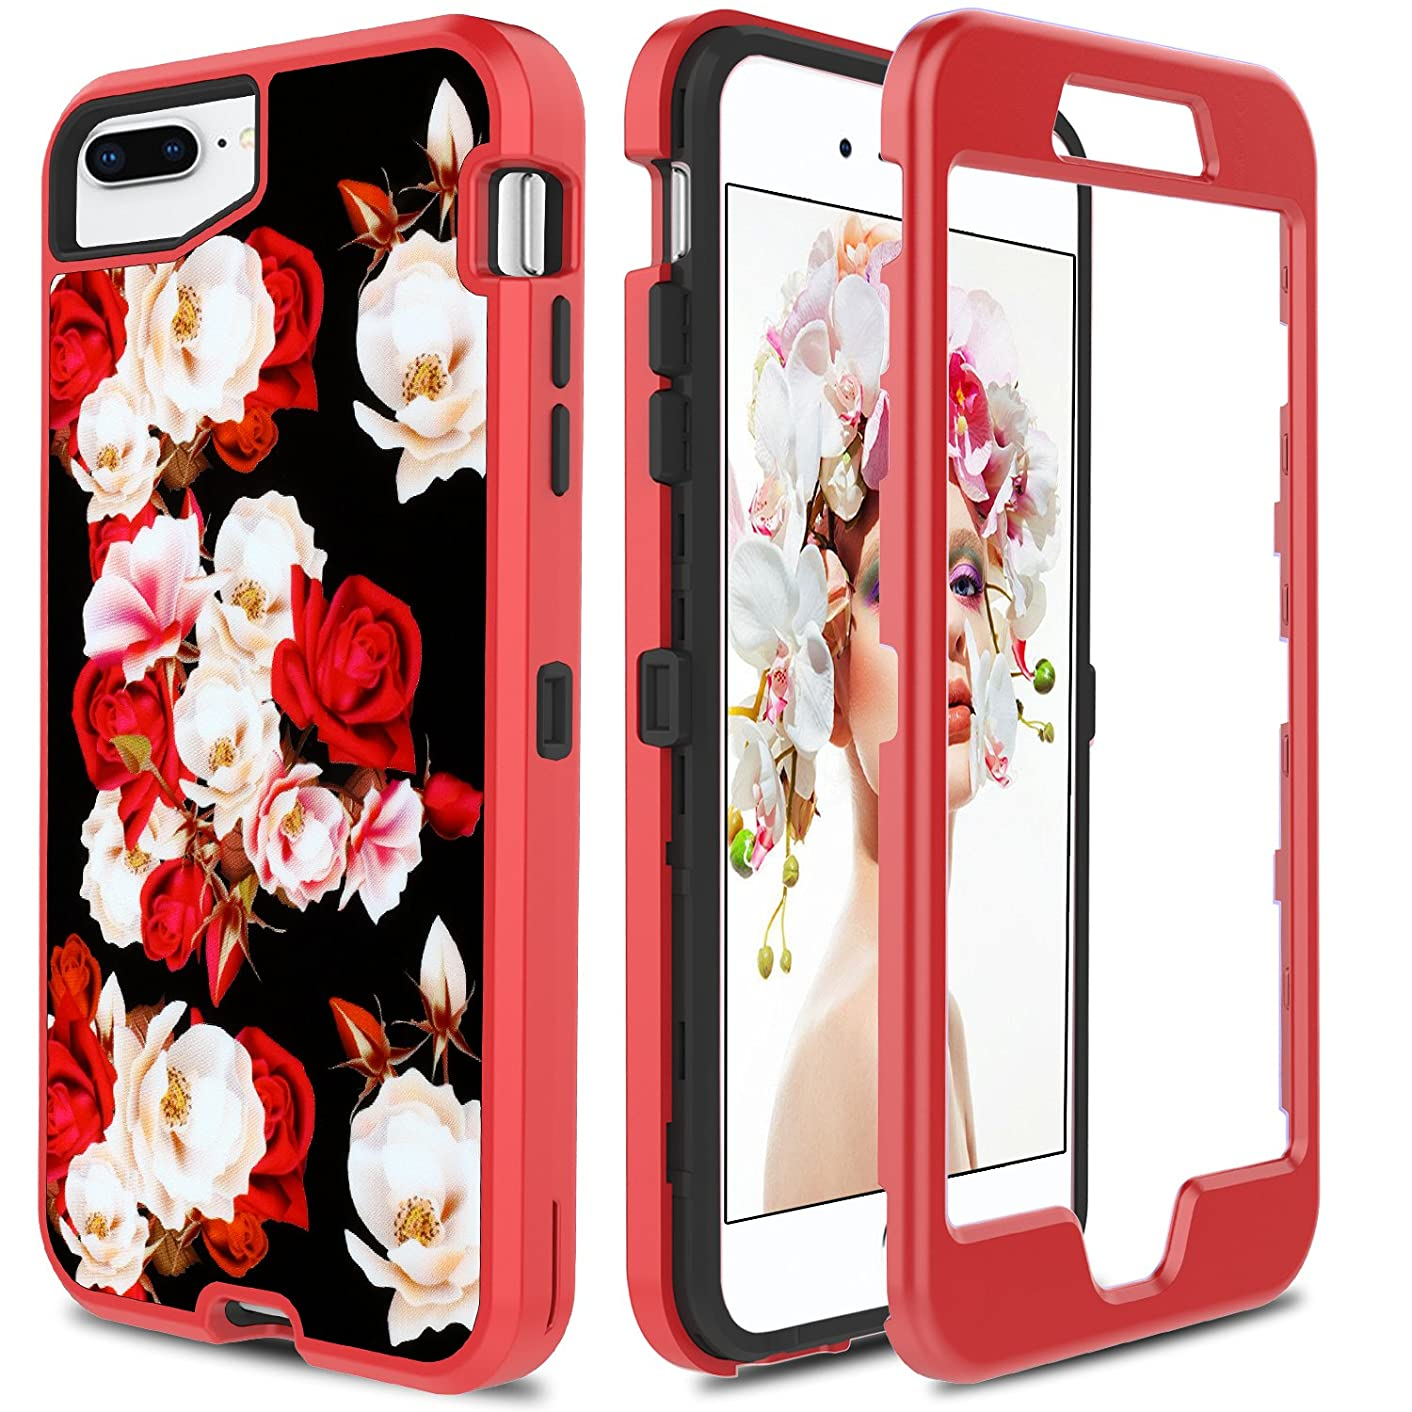 Floral Case for iPhone 8 Plus,Case for iPhone 7 Plus, PURSQ Hybrid 3 IN 1 Heavy Duty Luxury Soft Rubber Flexible TPU with Floral Design Shockproof Back Cover for iPhone 7 Plus/8 Plus